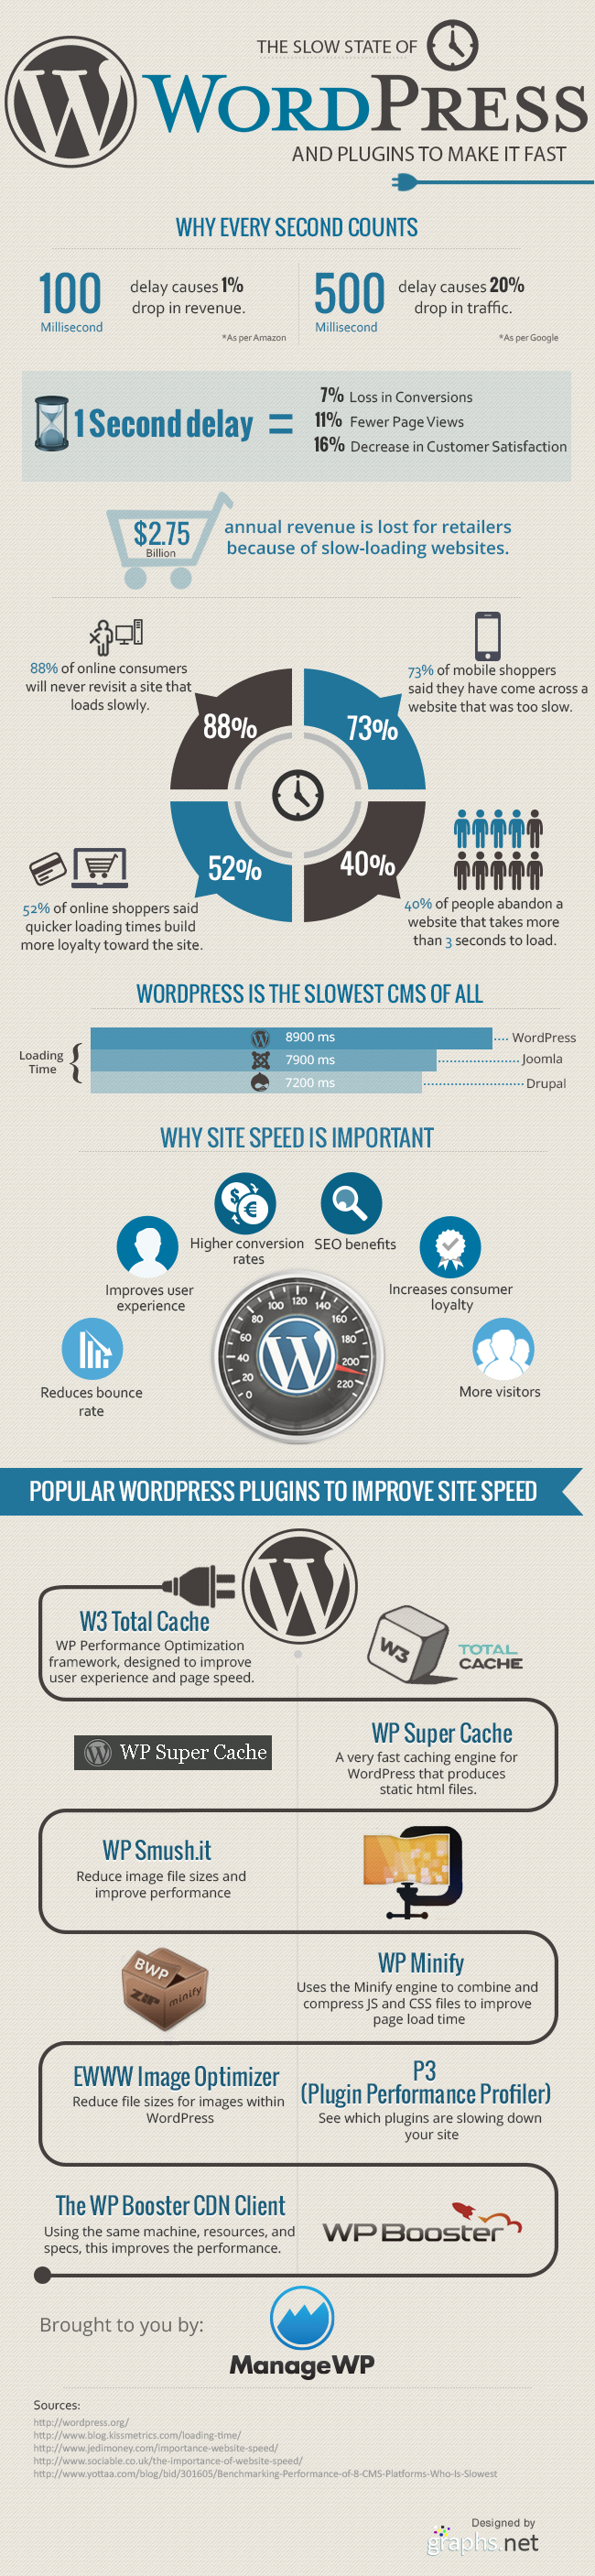 The Slow State of WordPress and Plugins